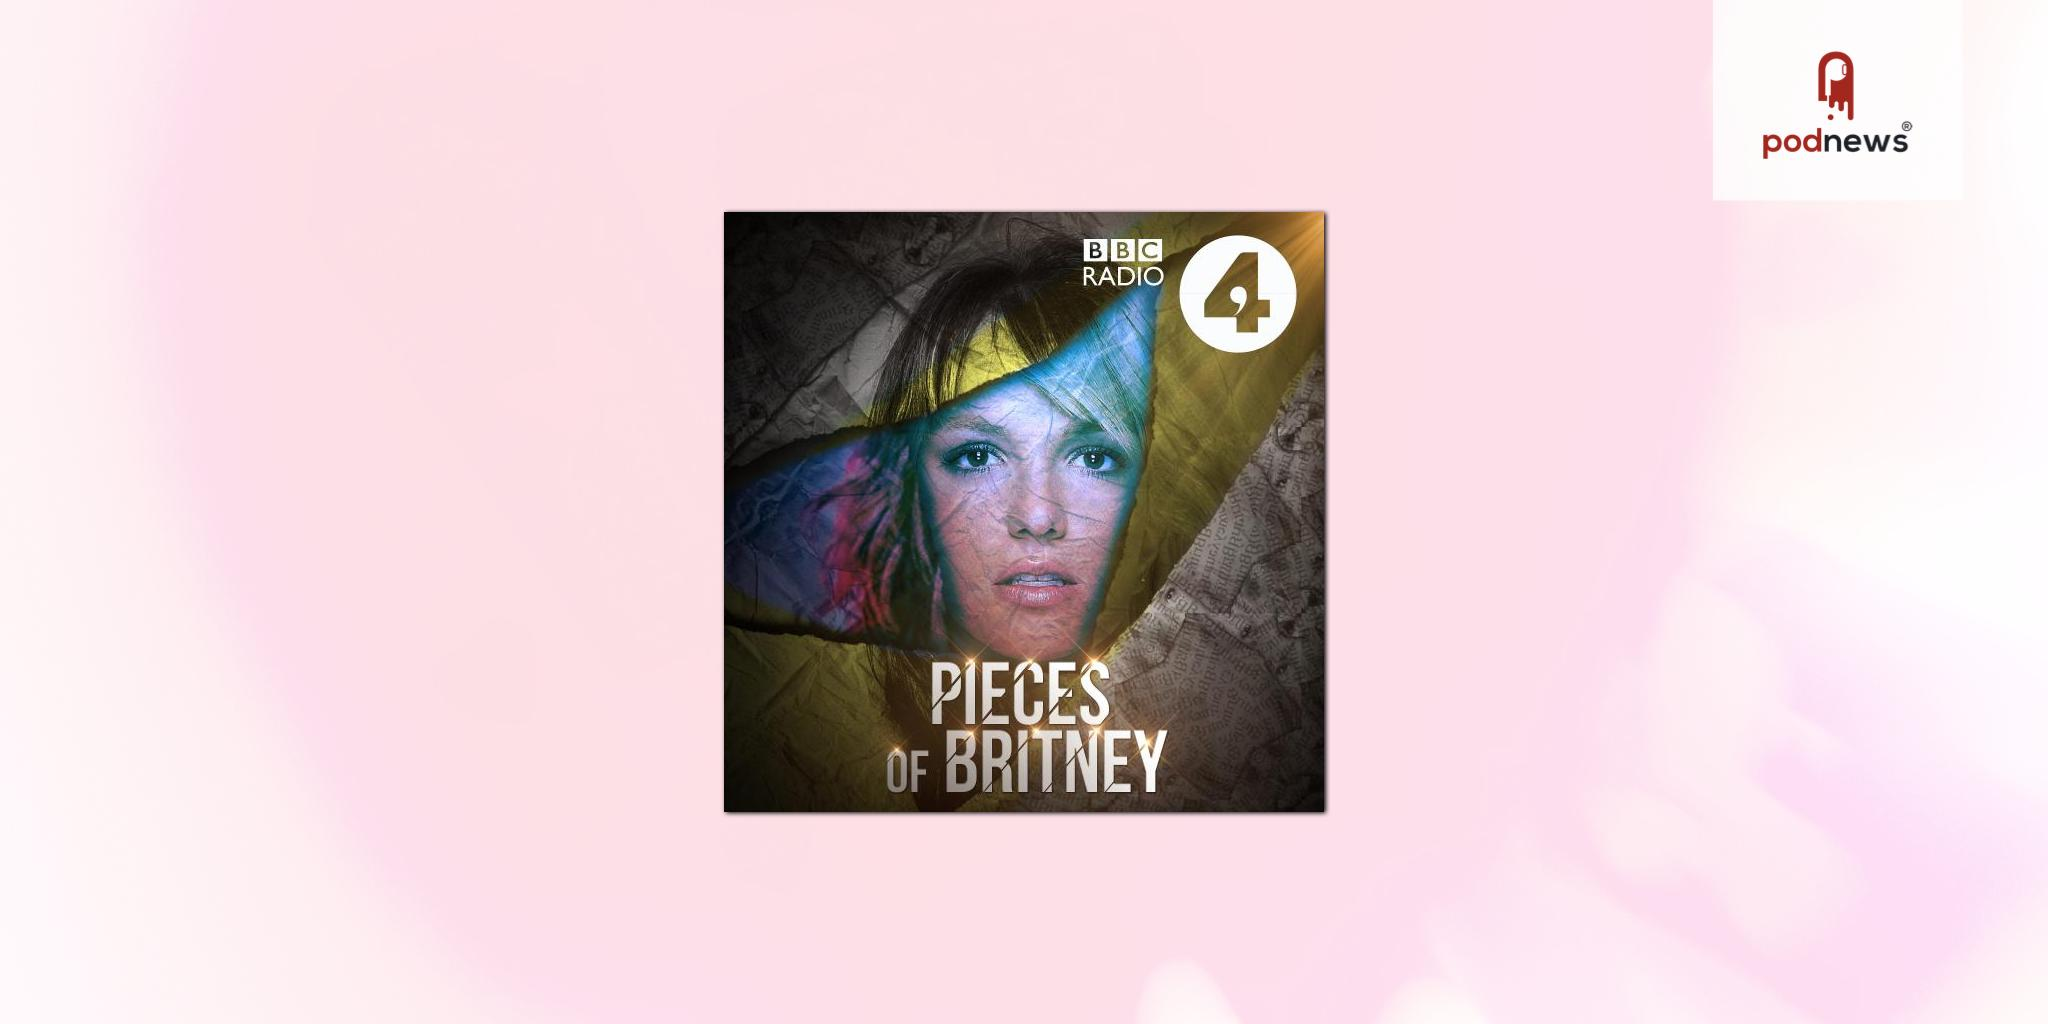 Pandora Sykes explores the life of Britney Spears and the media's portrayal of women in new Radio 4 podcast